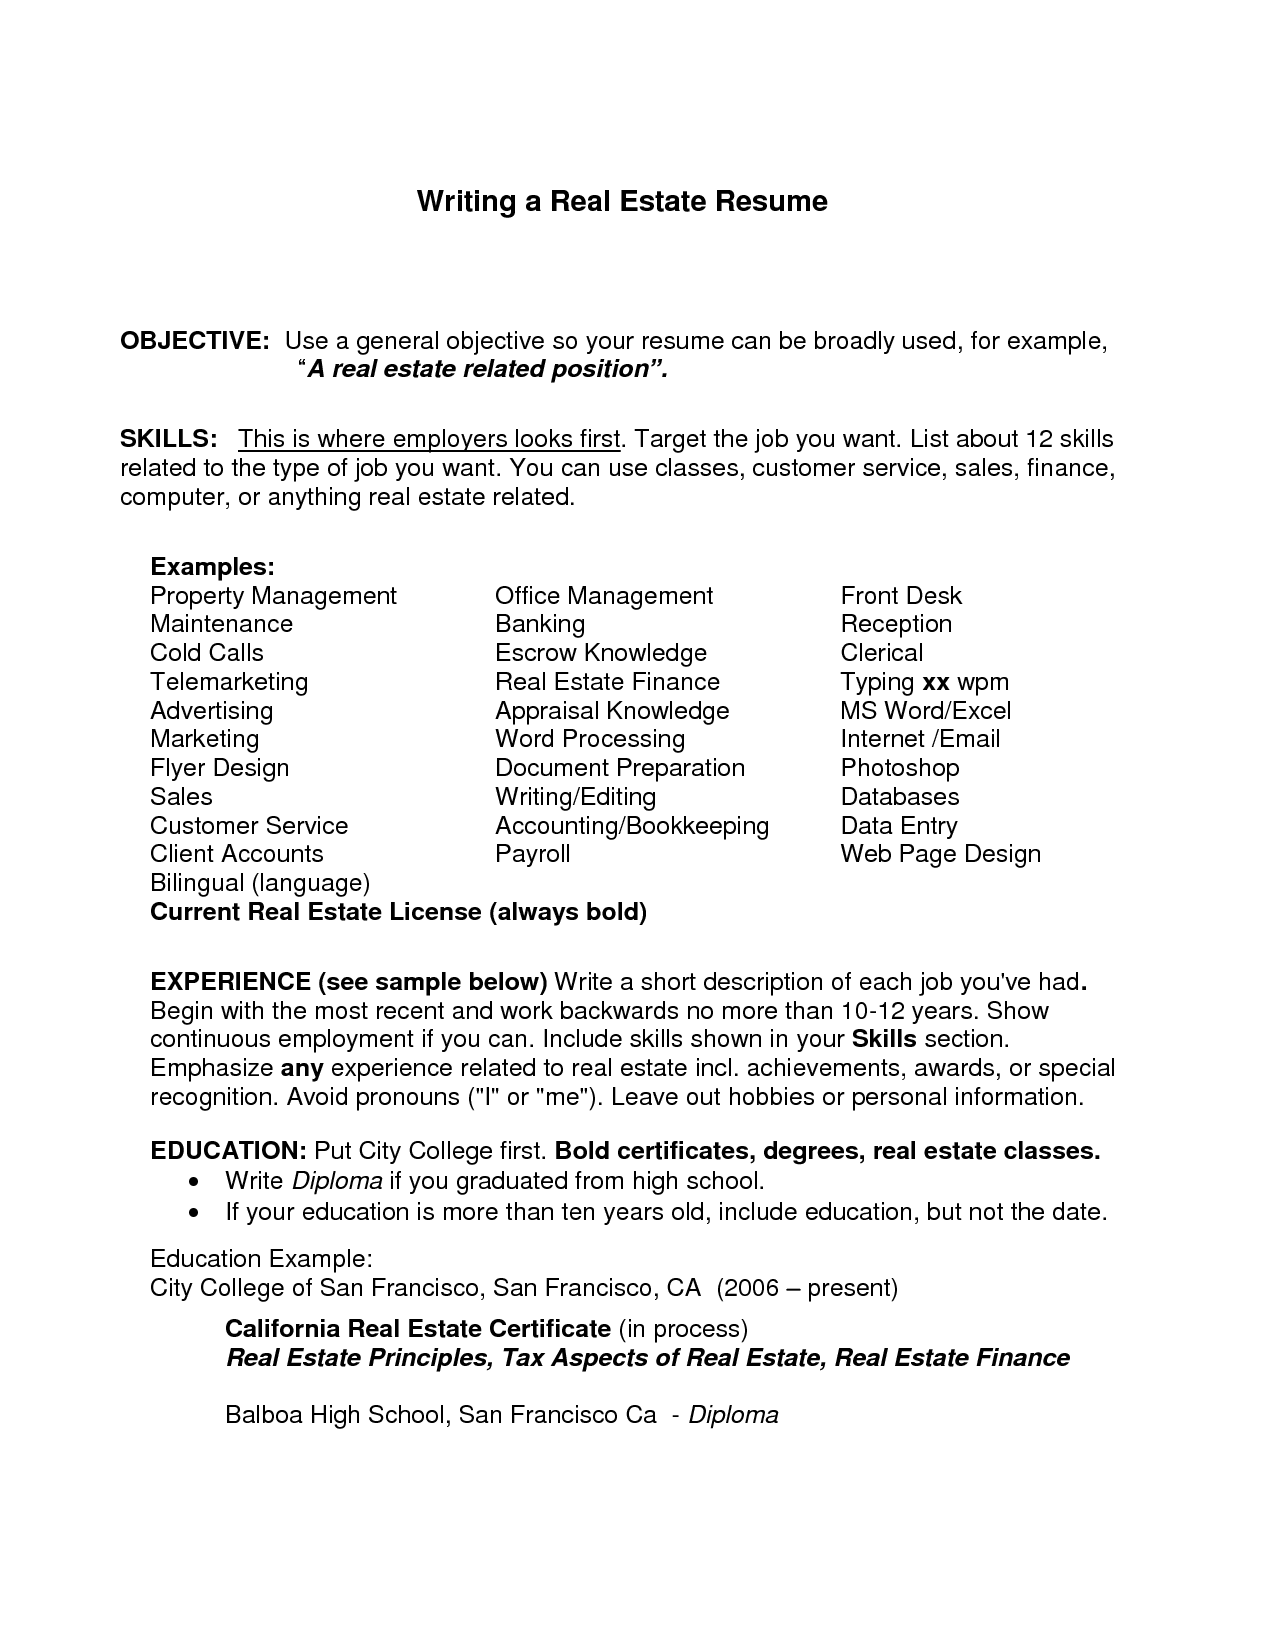 Career Resume General Resume Objective Examples Job Resume Objective